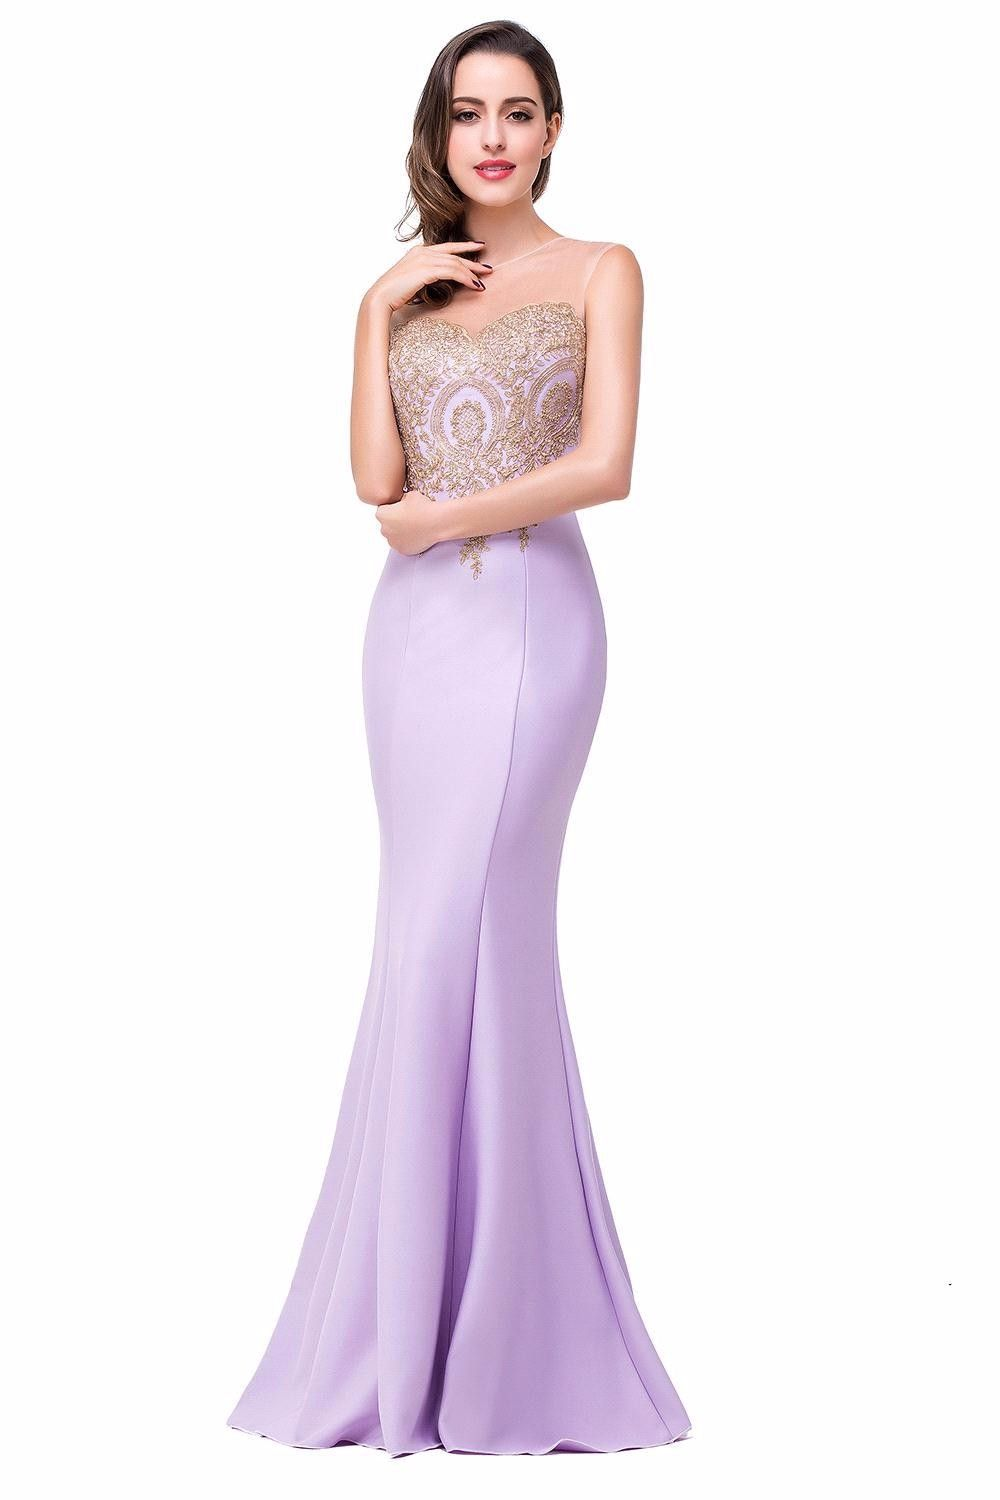 Cheap dresses to wear with leggings buy quality dress bra cheap dresses to wear with leggings buy quality dress bra directly from china dress outlet ombrellifo Choice Image